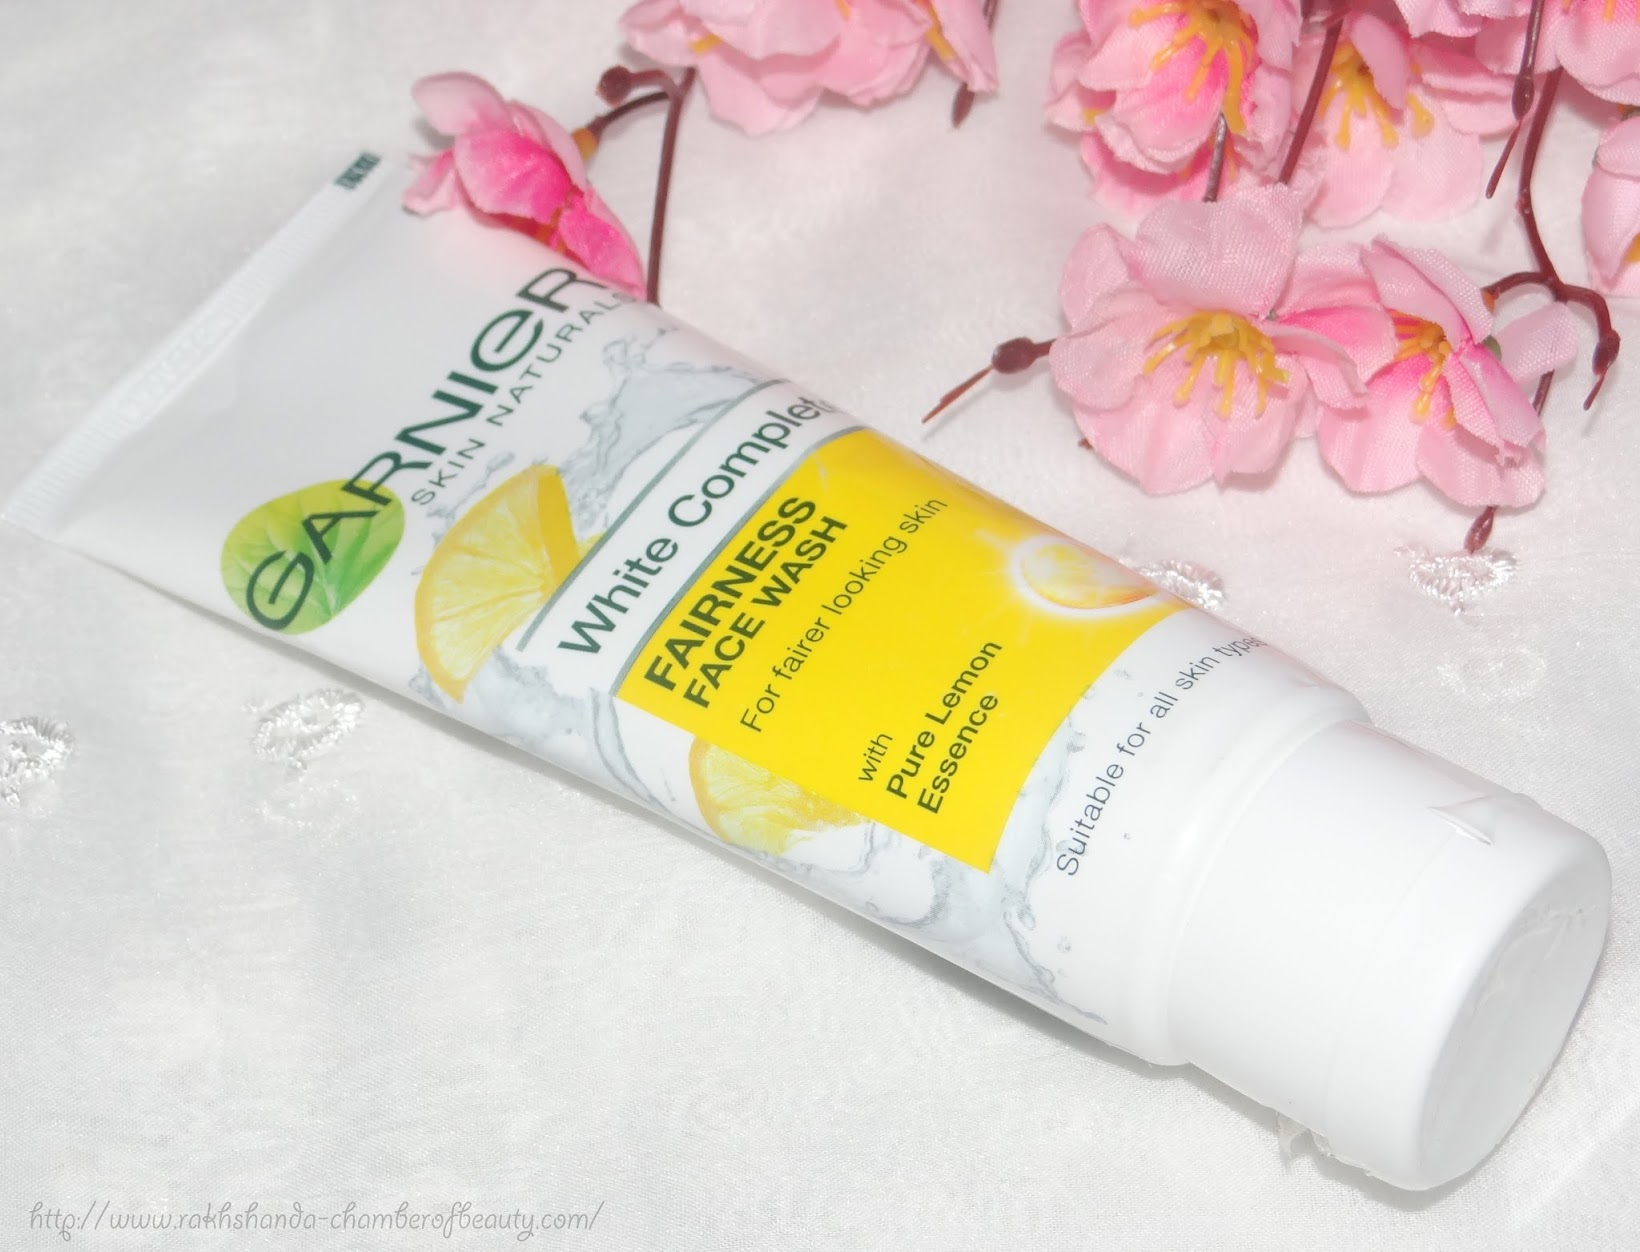 #7DayGarnierChallenge- Garnier White Complete Fairness Face Wash and Cream (review, photos, price), fairness cream, Indian beauty blogger, Chamber of Beauty